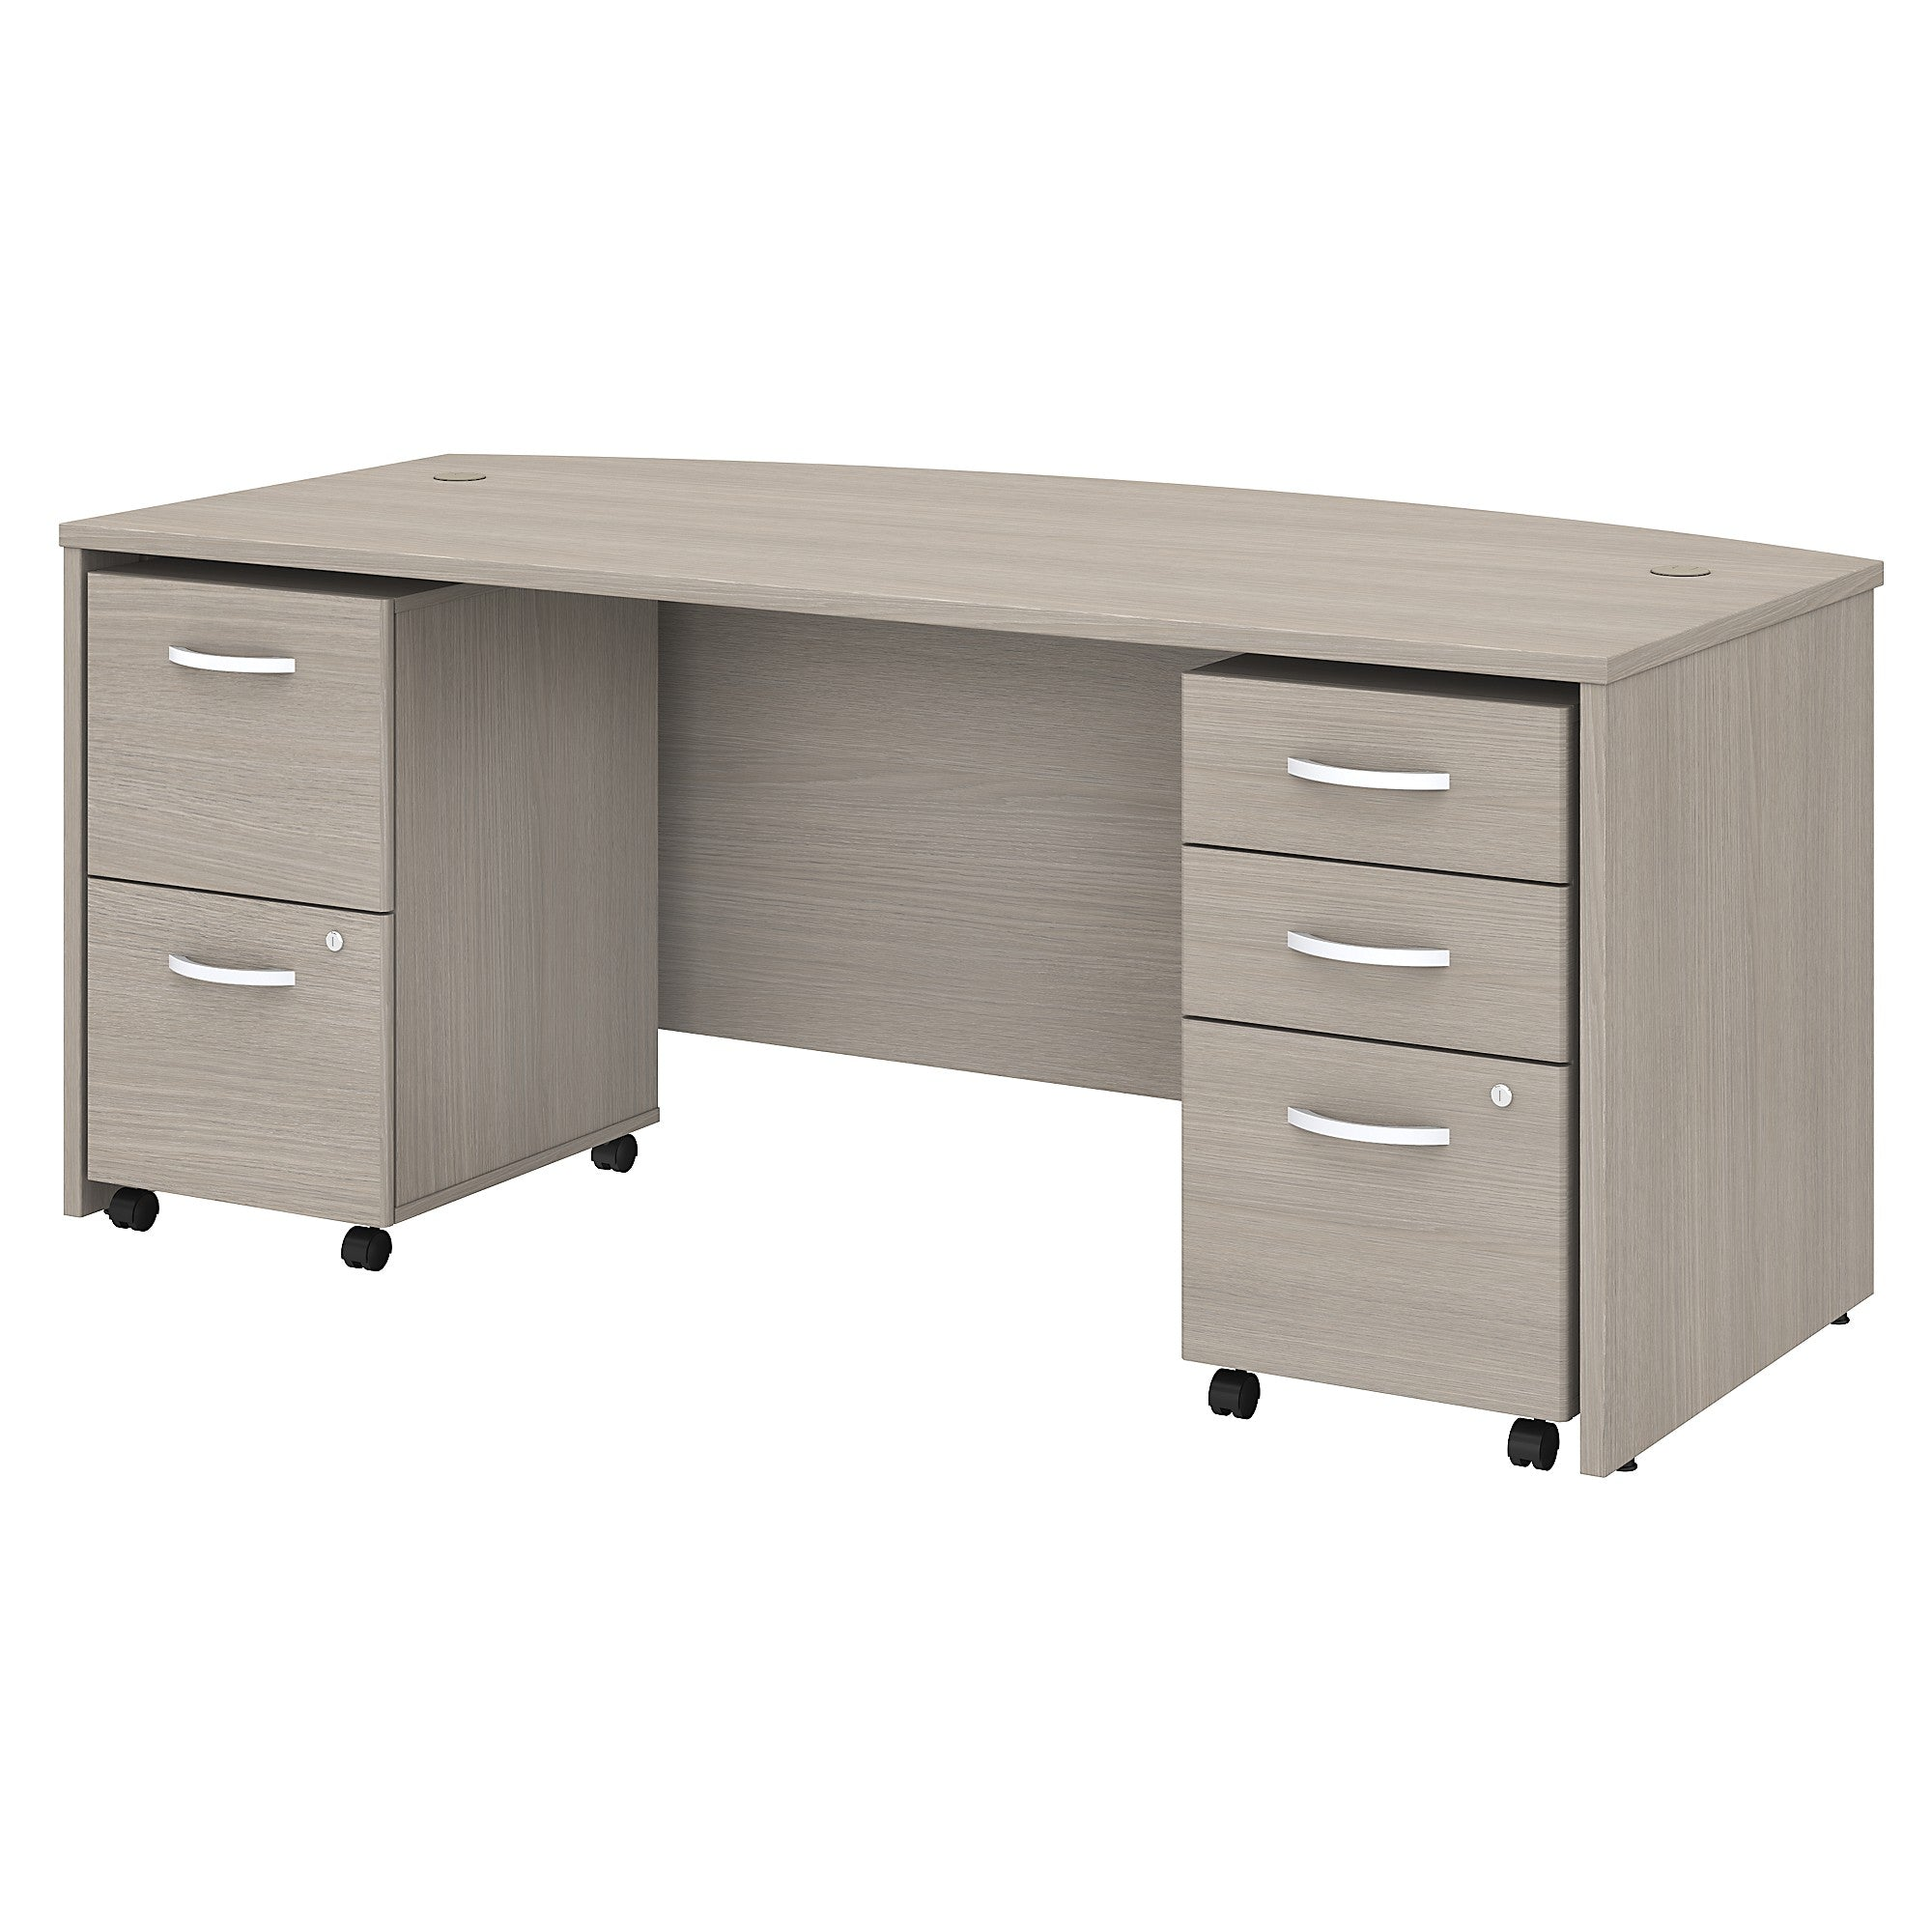 Studio C 72W x 36D Bow Front Desk with Mobile File Cabinets -Sand Oak